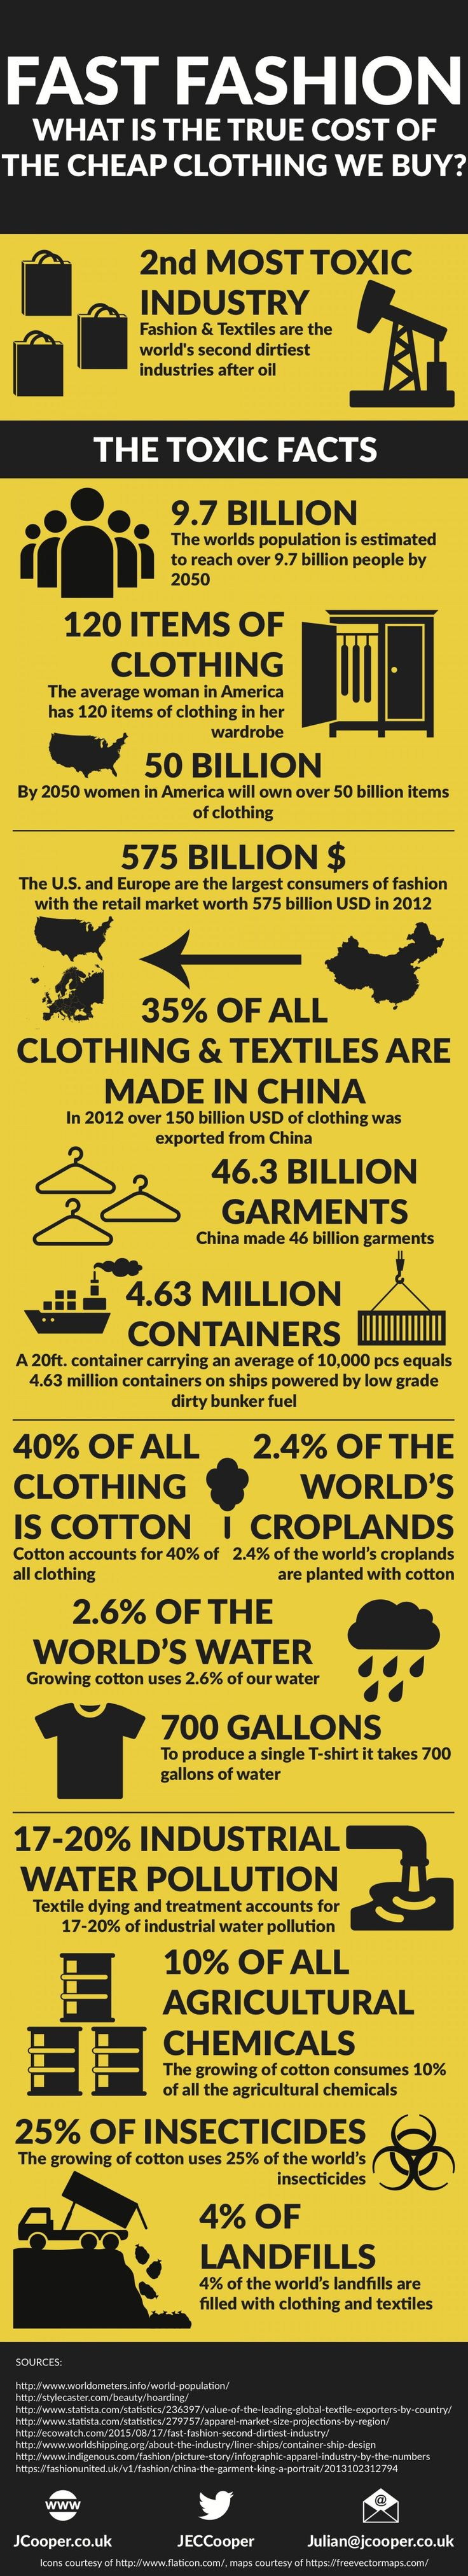 Fast Fashion Toxic Facts Infographic